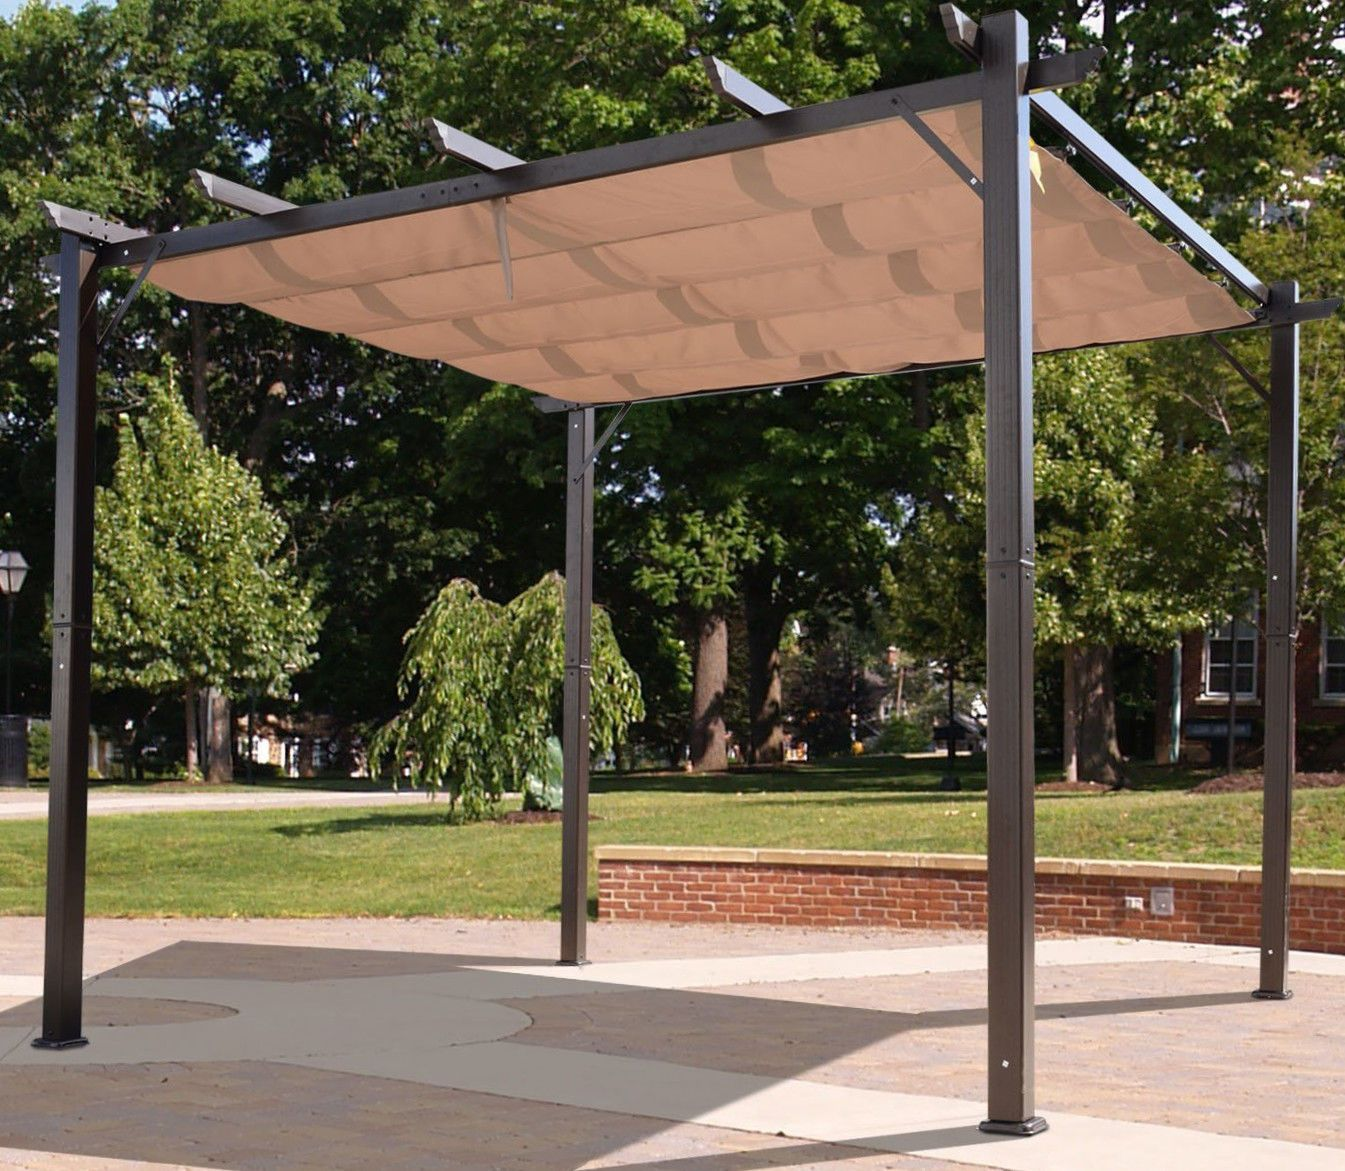 Outdoor Pergola Aluminum Canopy Retractable Shade Shelter 10x10 Patio Gazebo Kit Outdoor Pergola Patio Gazebo Backyard Pergola